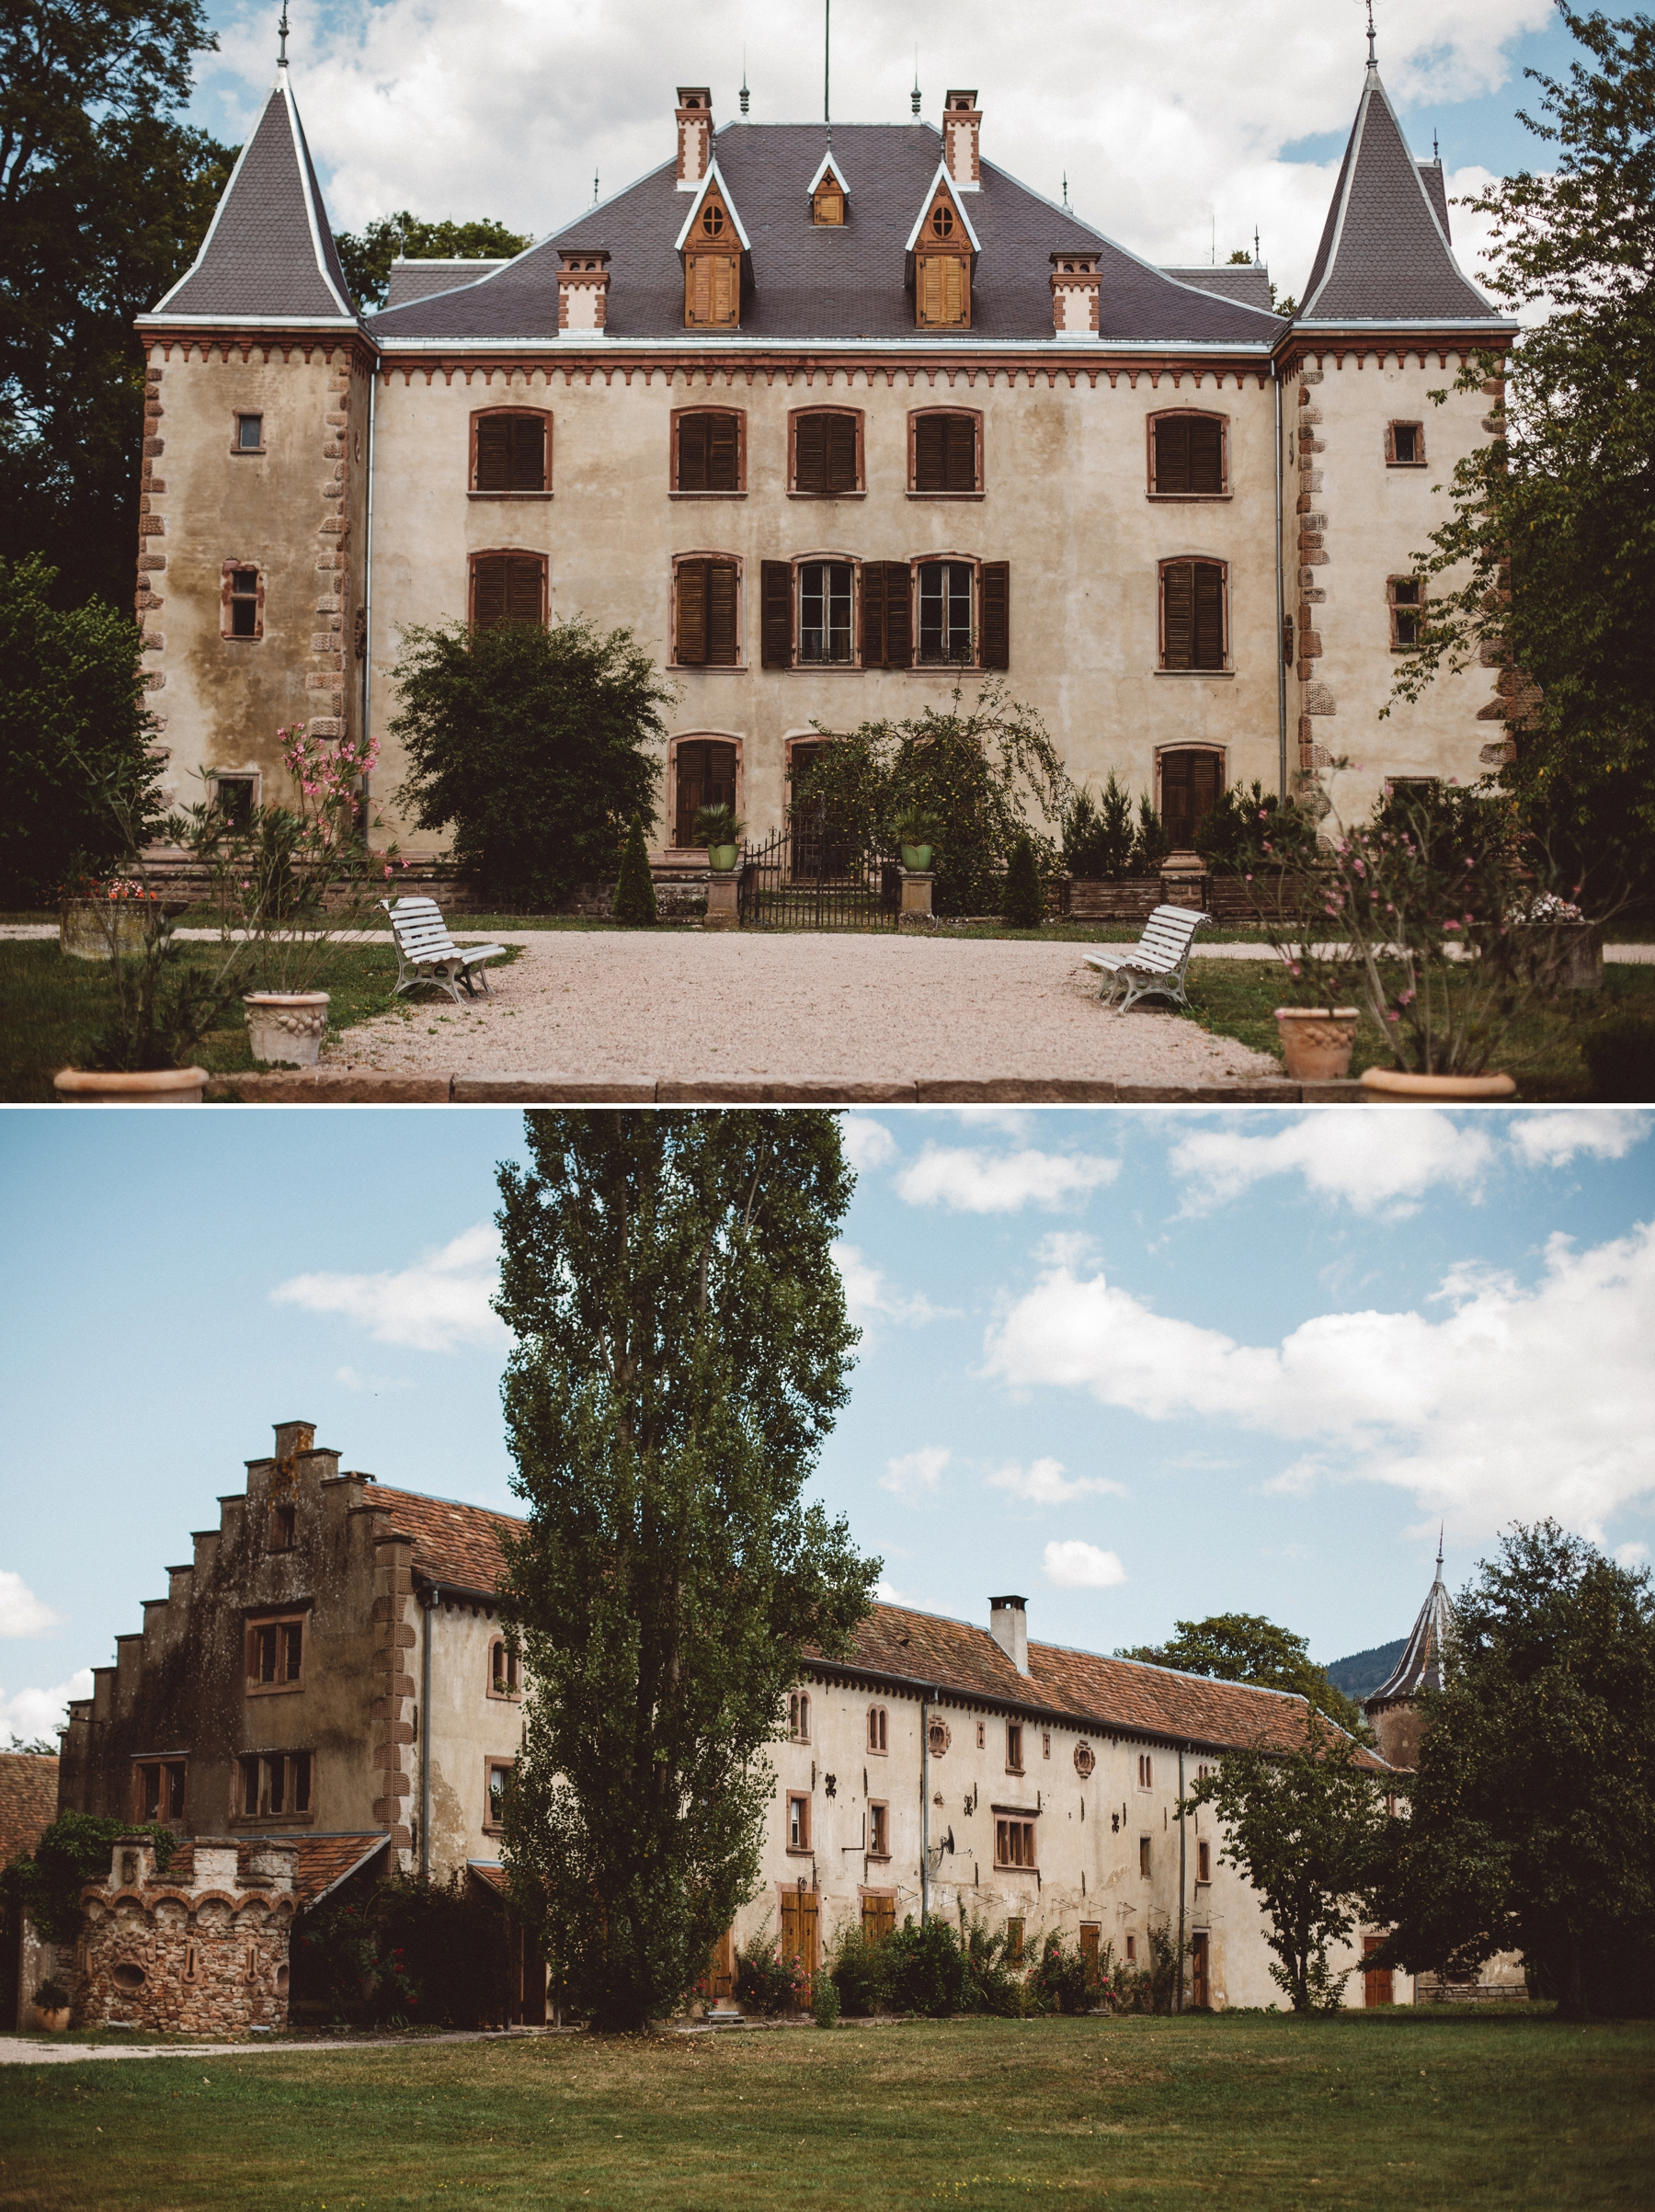 mariage-chateau-thanville-alsace_0000.jpg